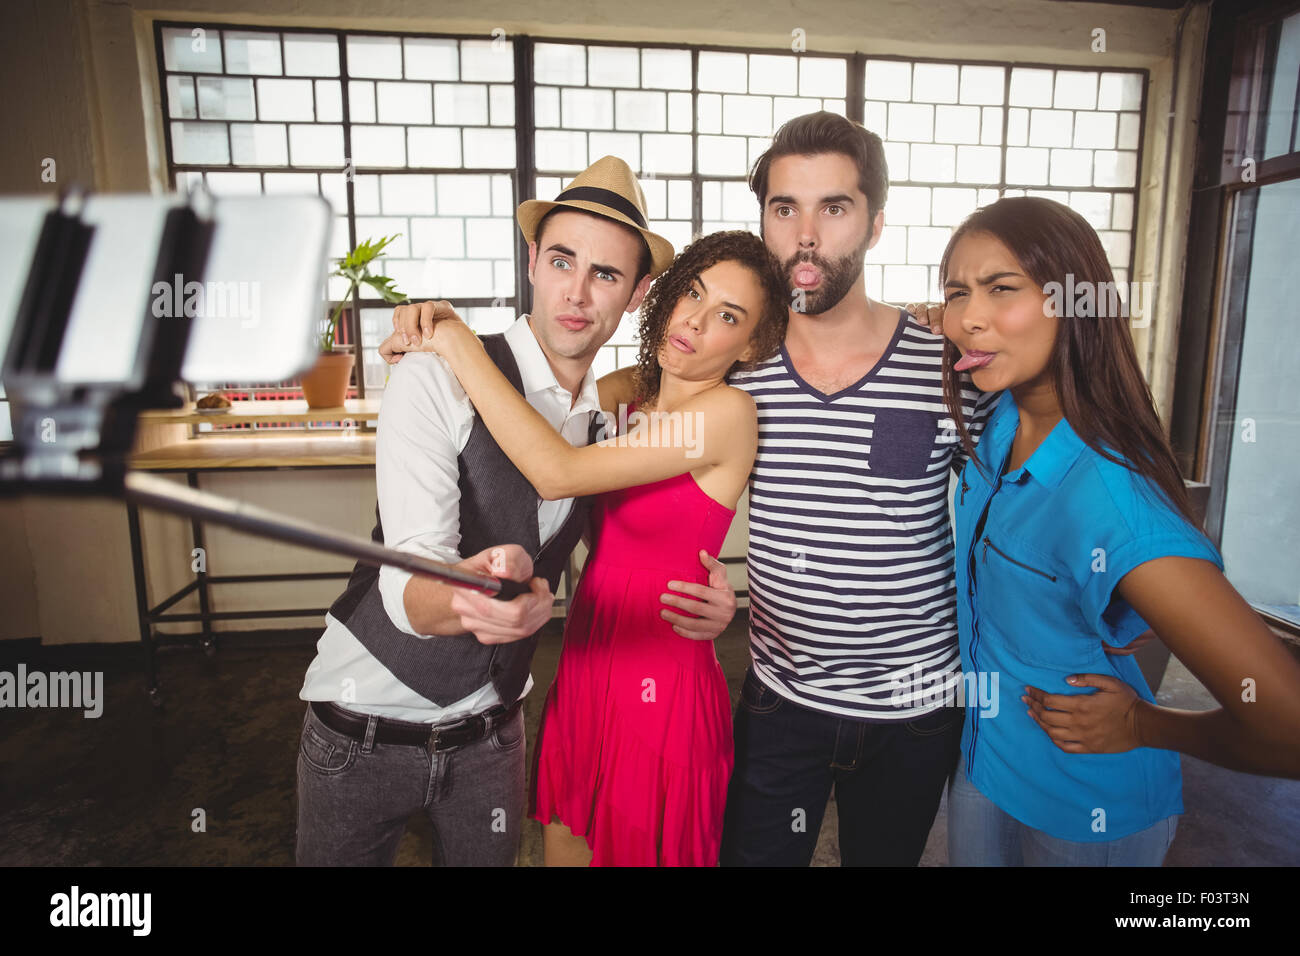 Grimacing friends taking selfies with selfiestick - Stock Image